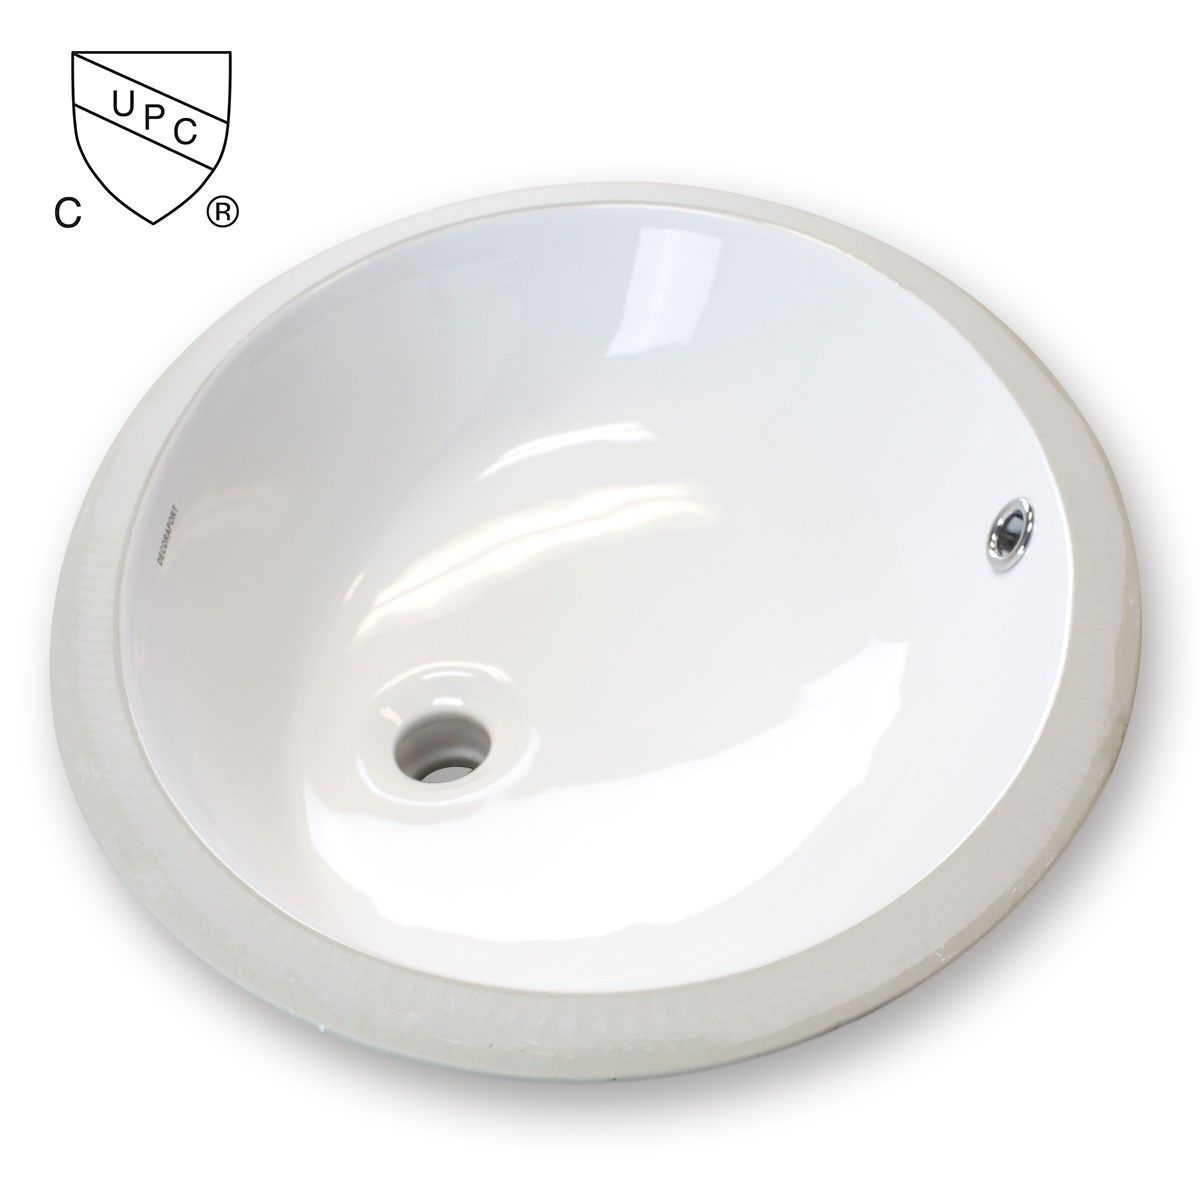 Decoraport White Oval Ceramic Under Mount Basin (MY-3706)